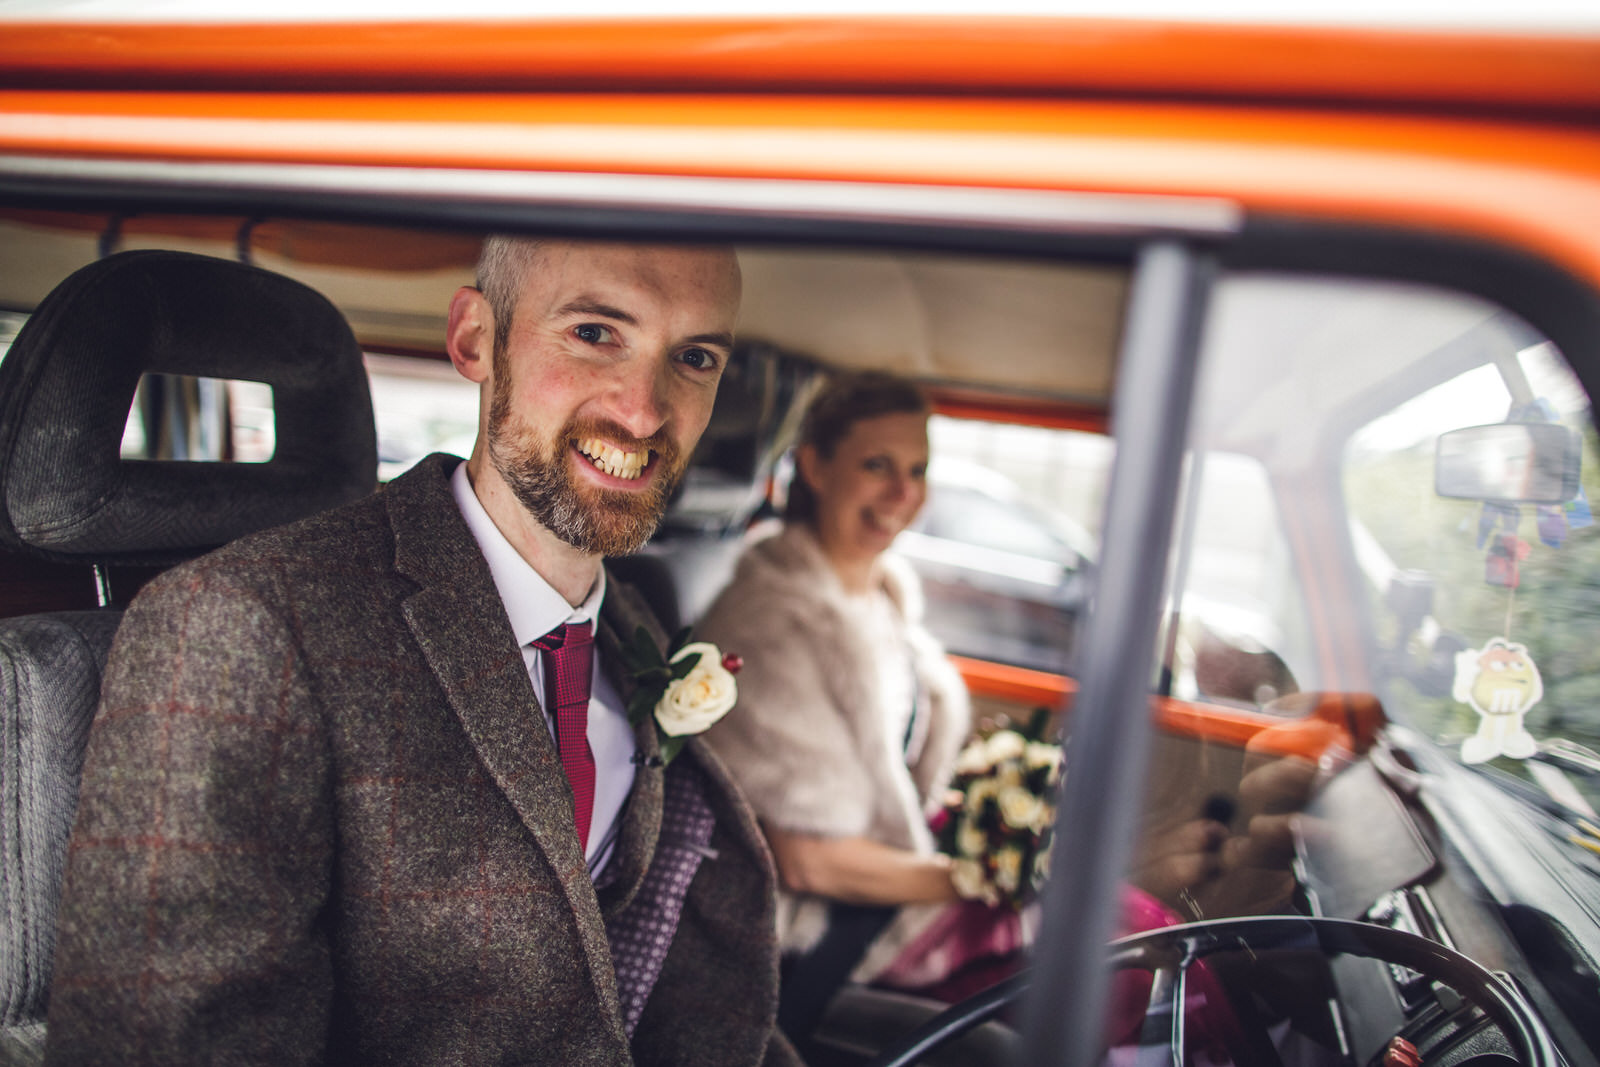 Roger_kenny-wedding-photographer-wicklow-dublin-zoo_078.jpg